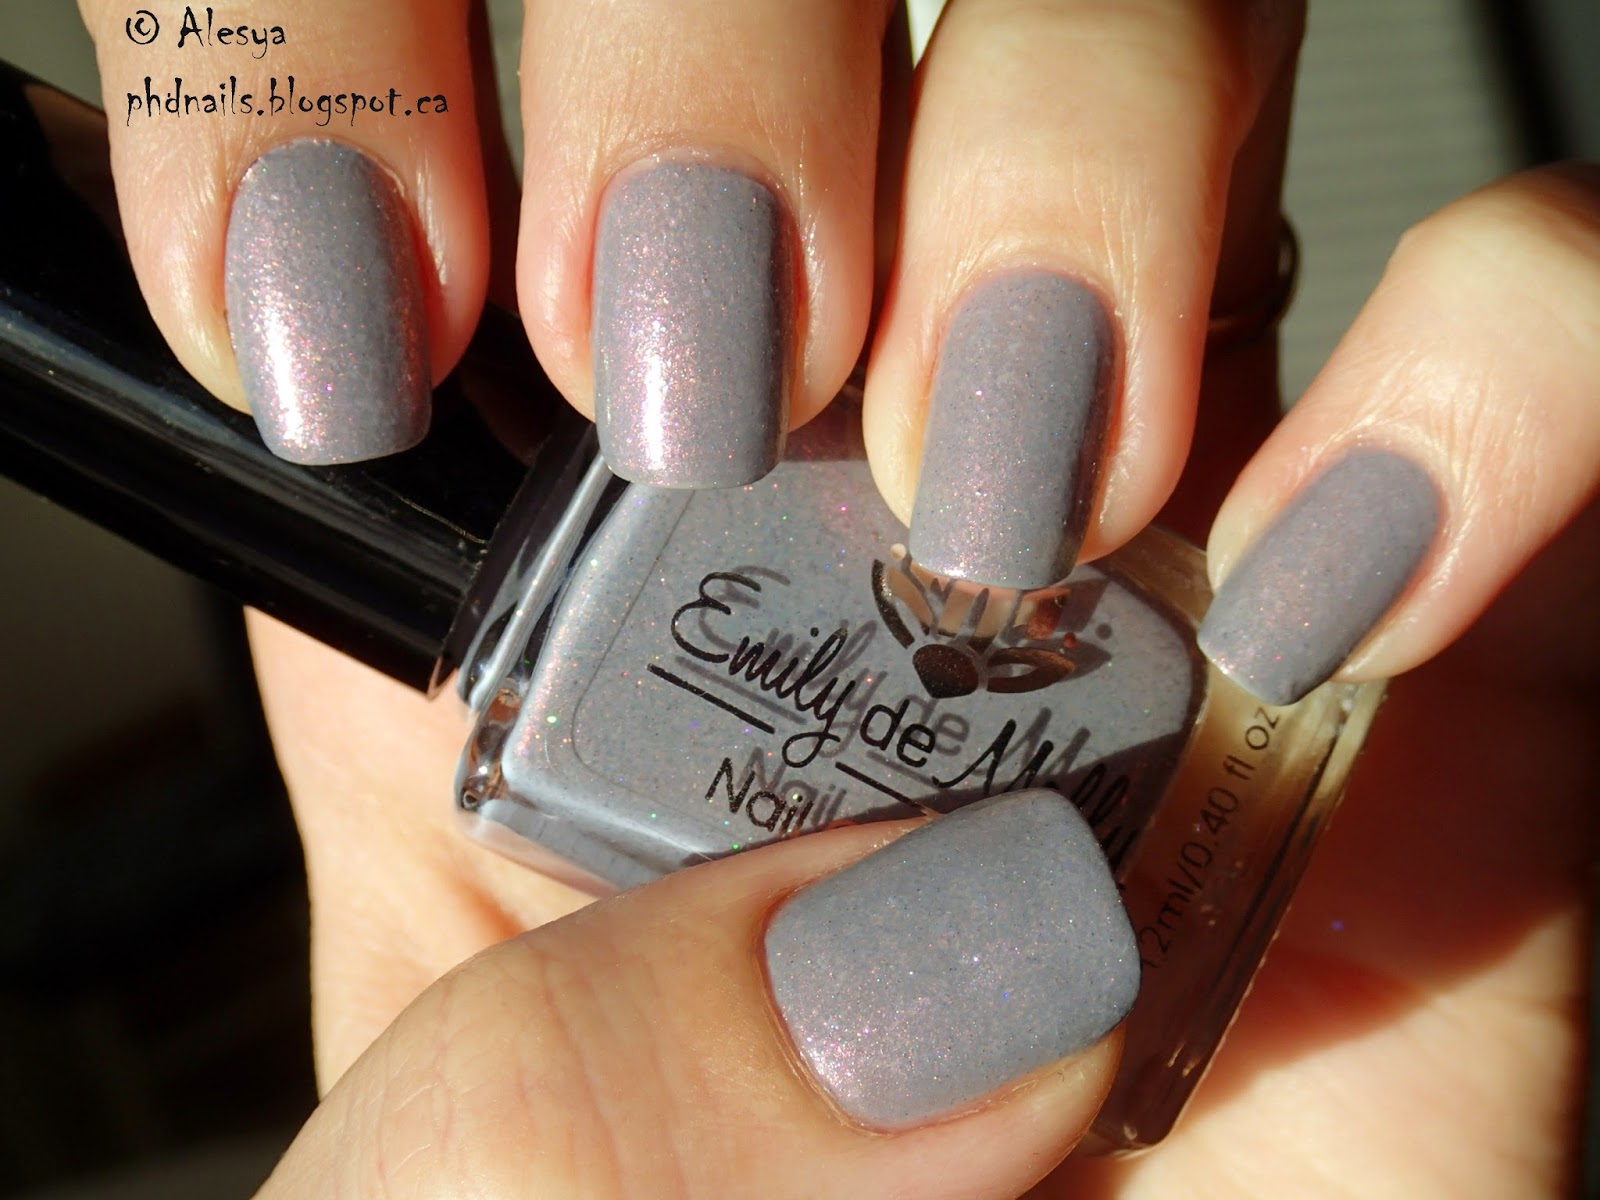 PhD nails: Swatches Emily de Molly Lace man and Chicken of the cave